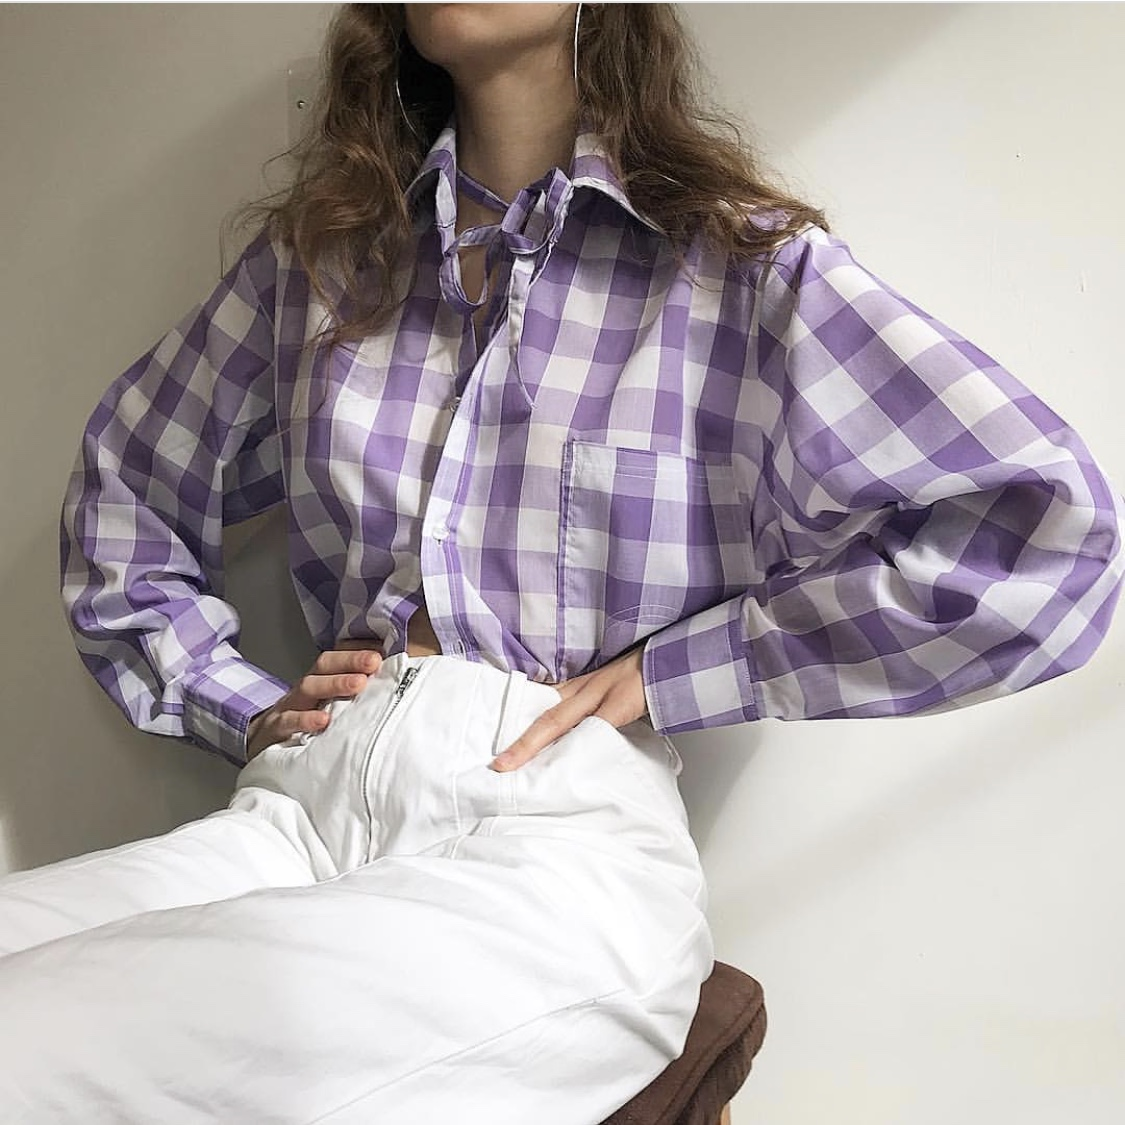 woman wearing violet plaid shirt and white jeans